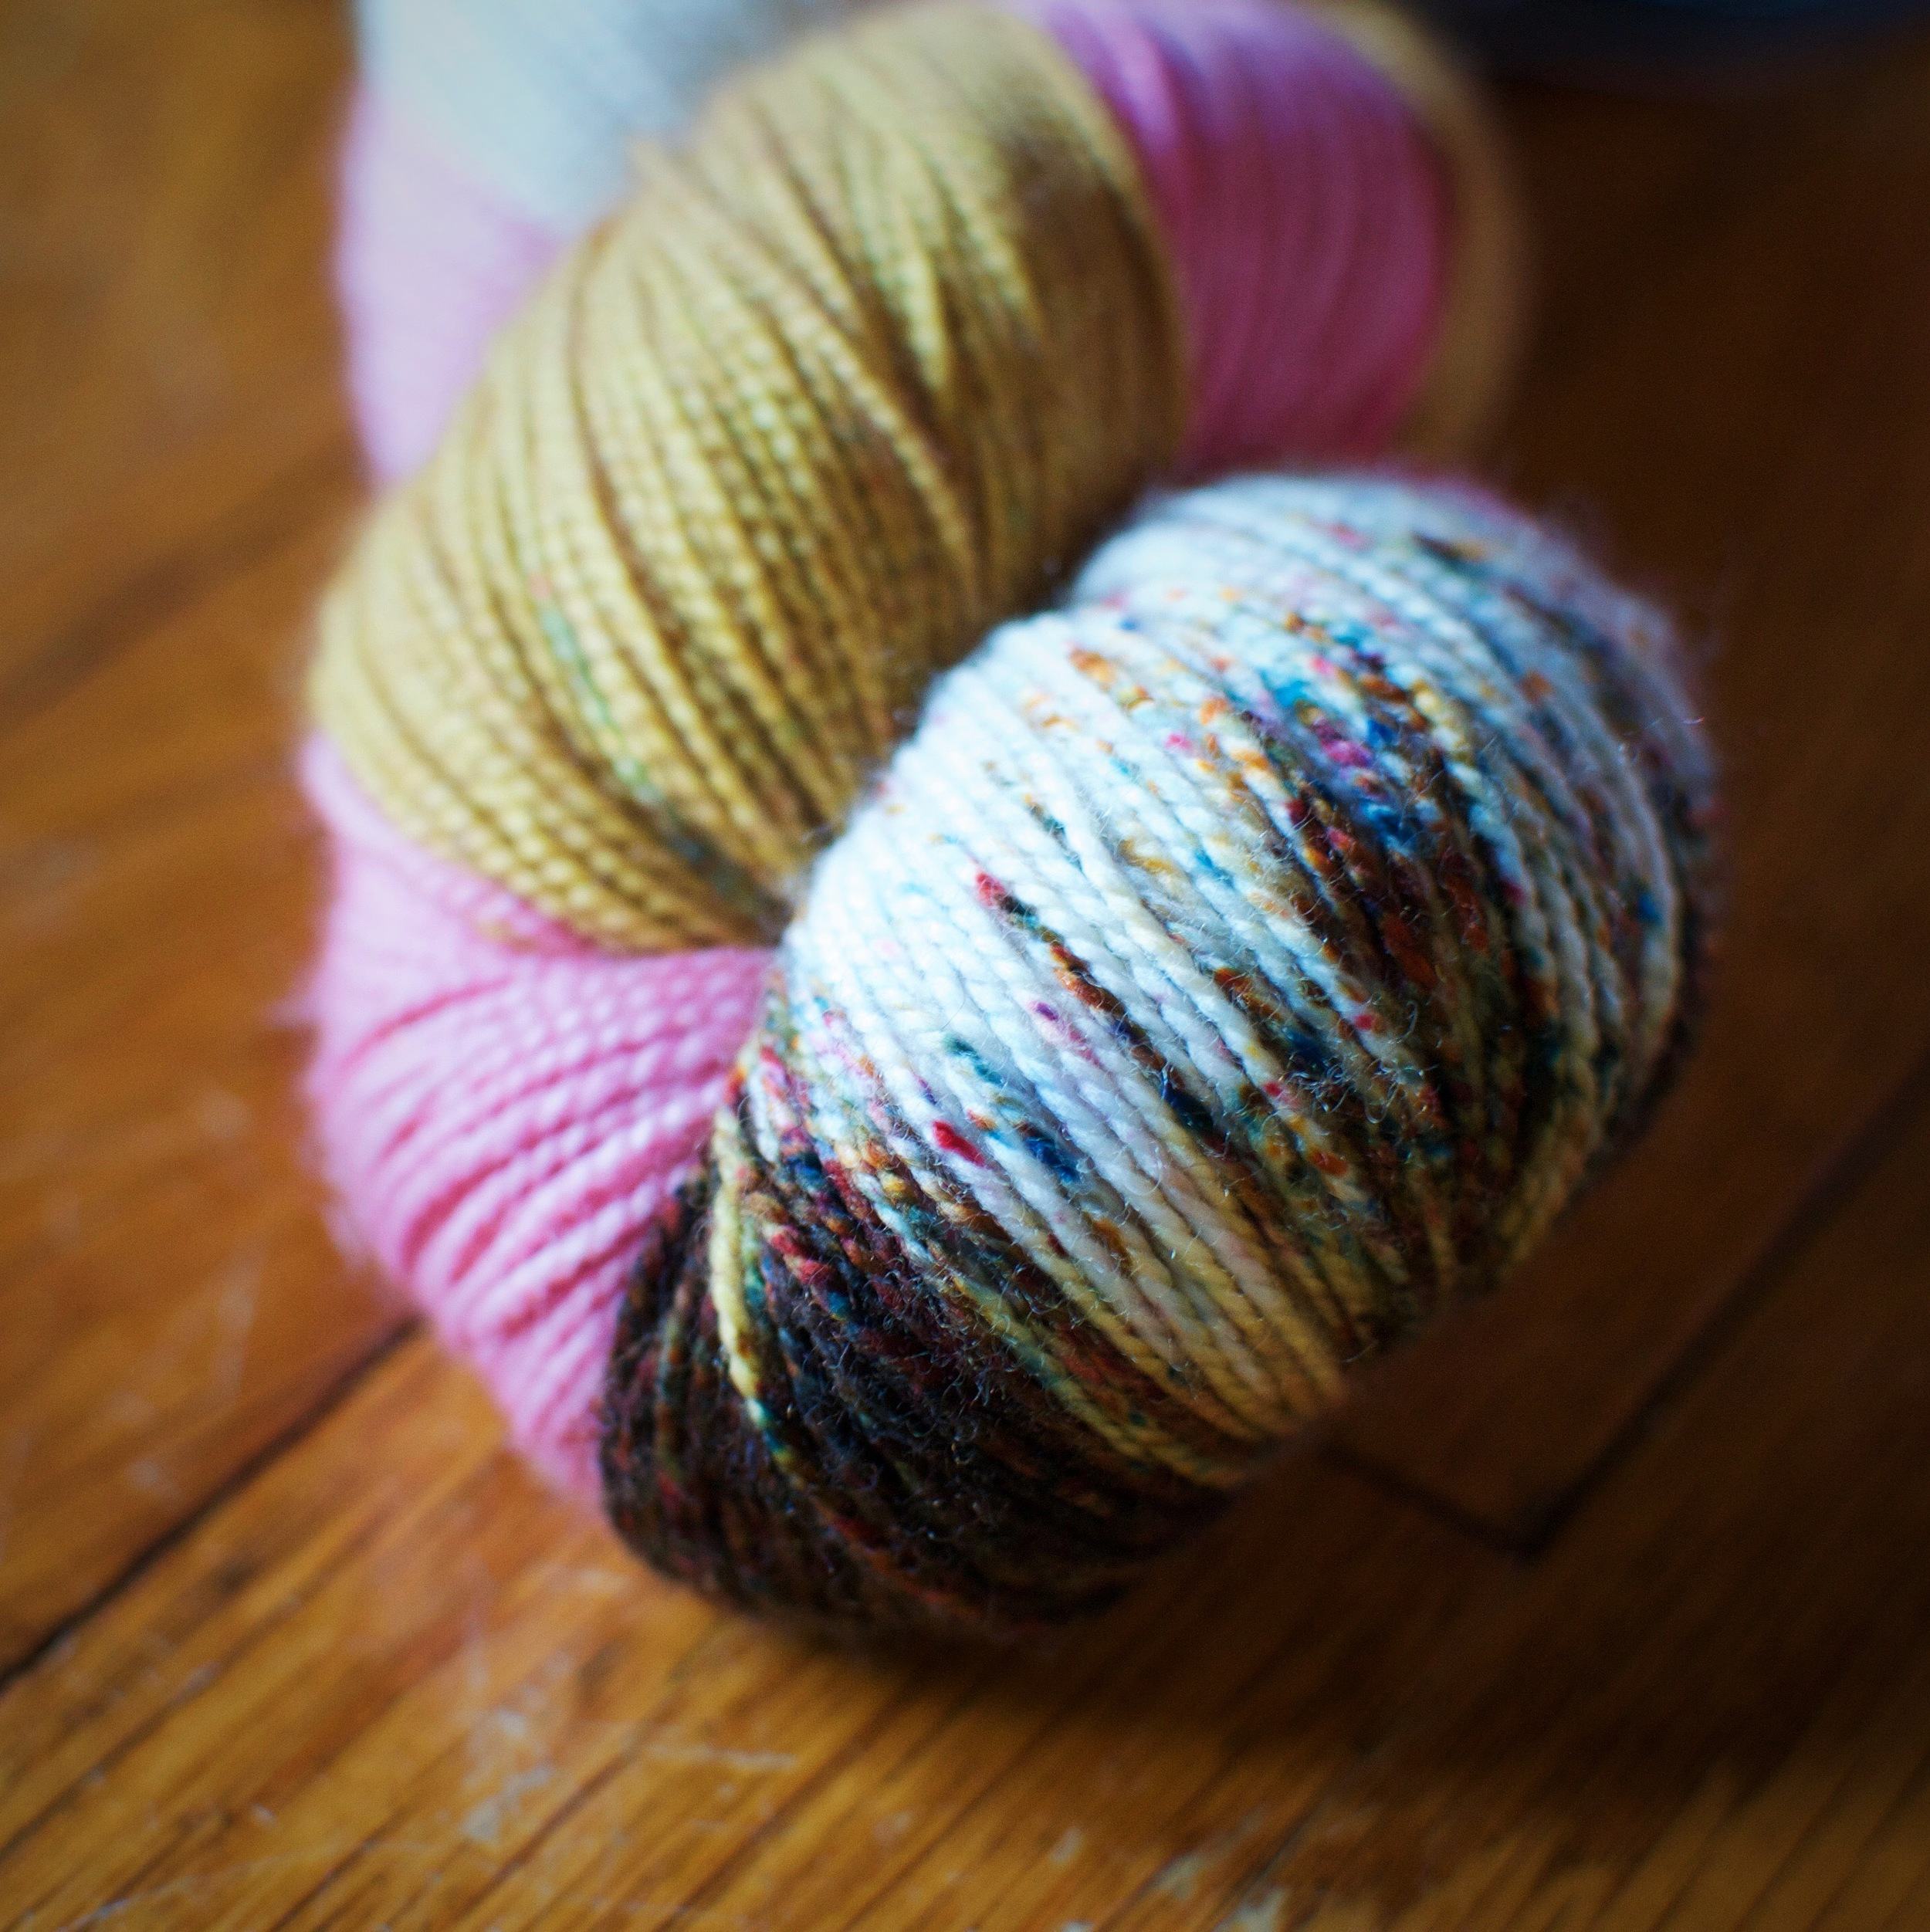 Well hello there Speckles - How you doin'?? (Another favorite colorway - Grand Budapest!)